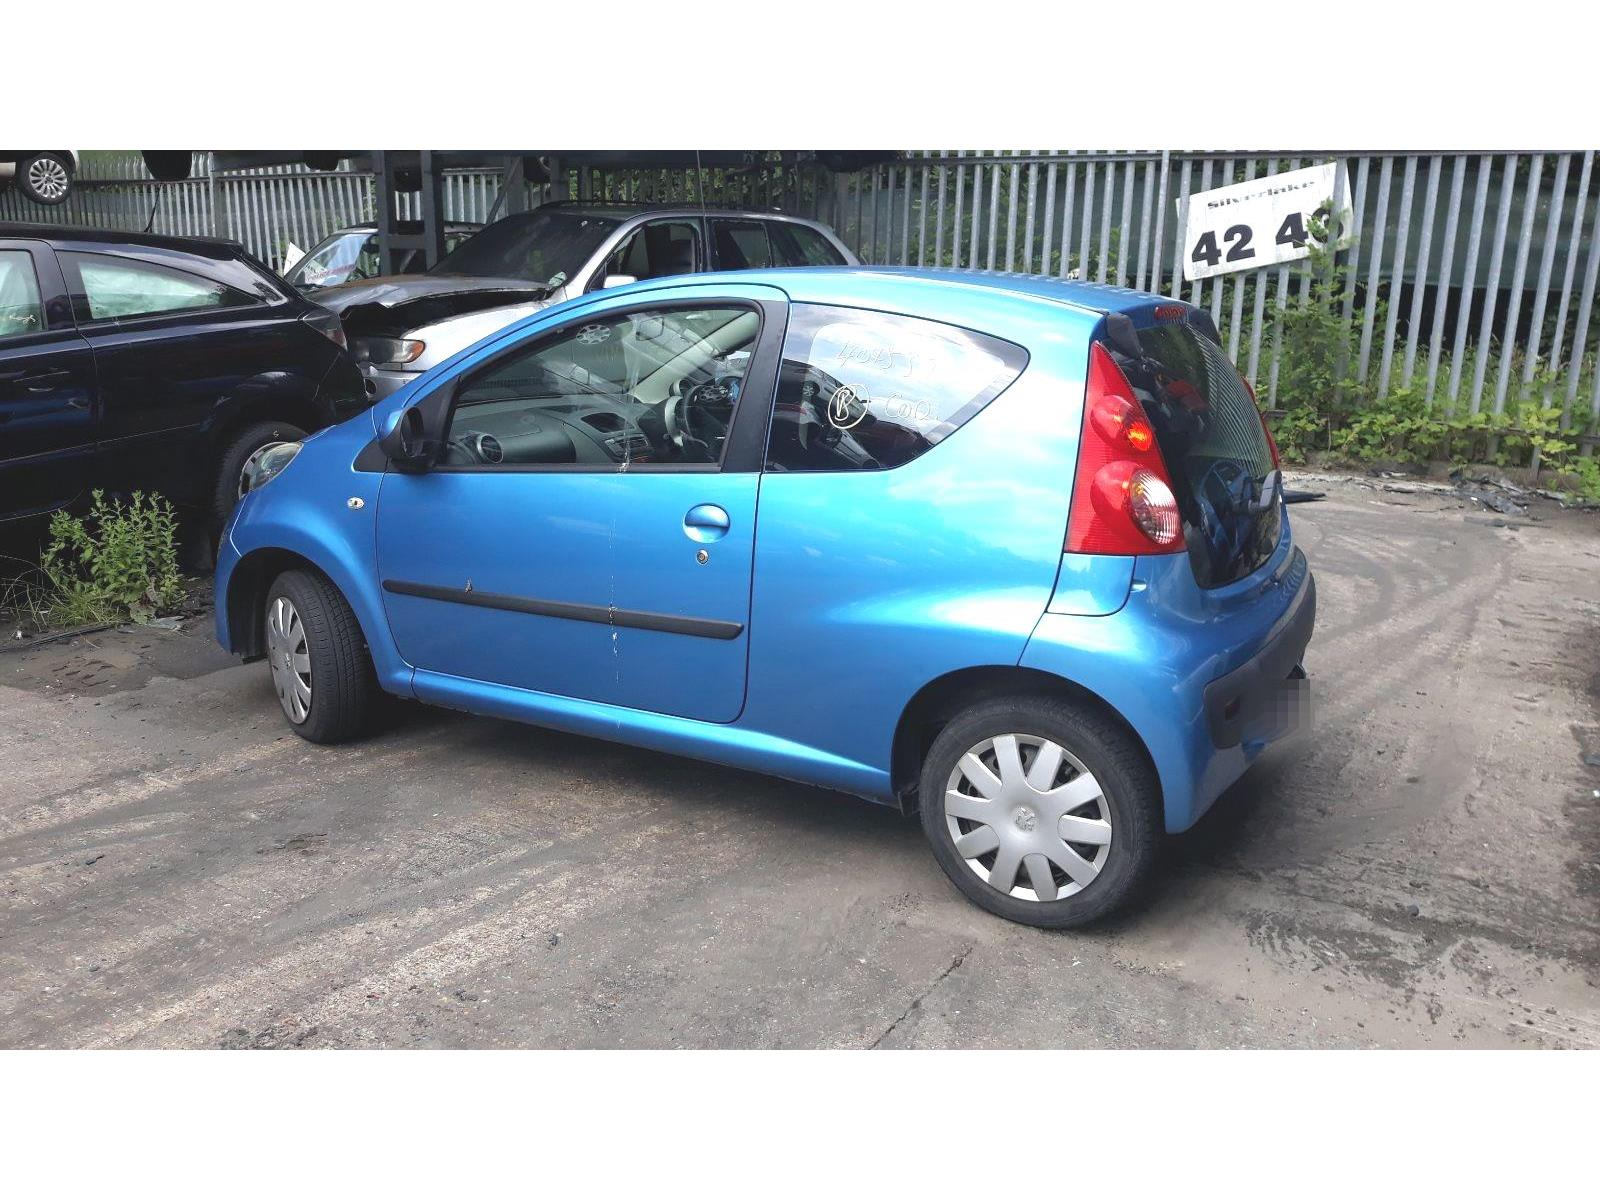 Peugeot 107 2005 To 2008 Urban 3 Door Hatchback Scrap Salvage Fuse Box On Car For Sale Auction Silverlake Autoparts